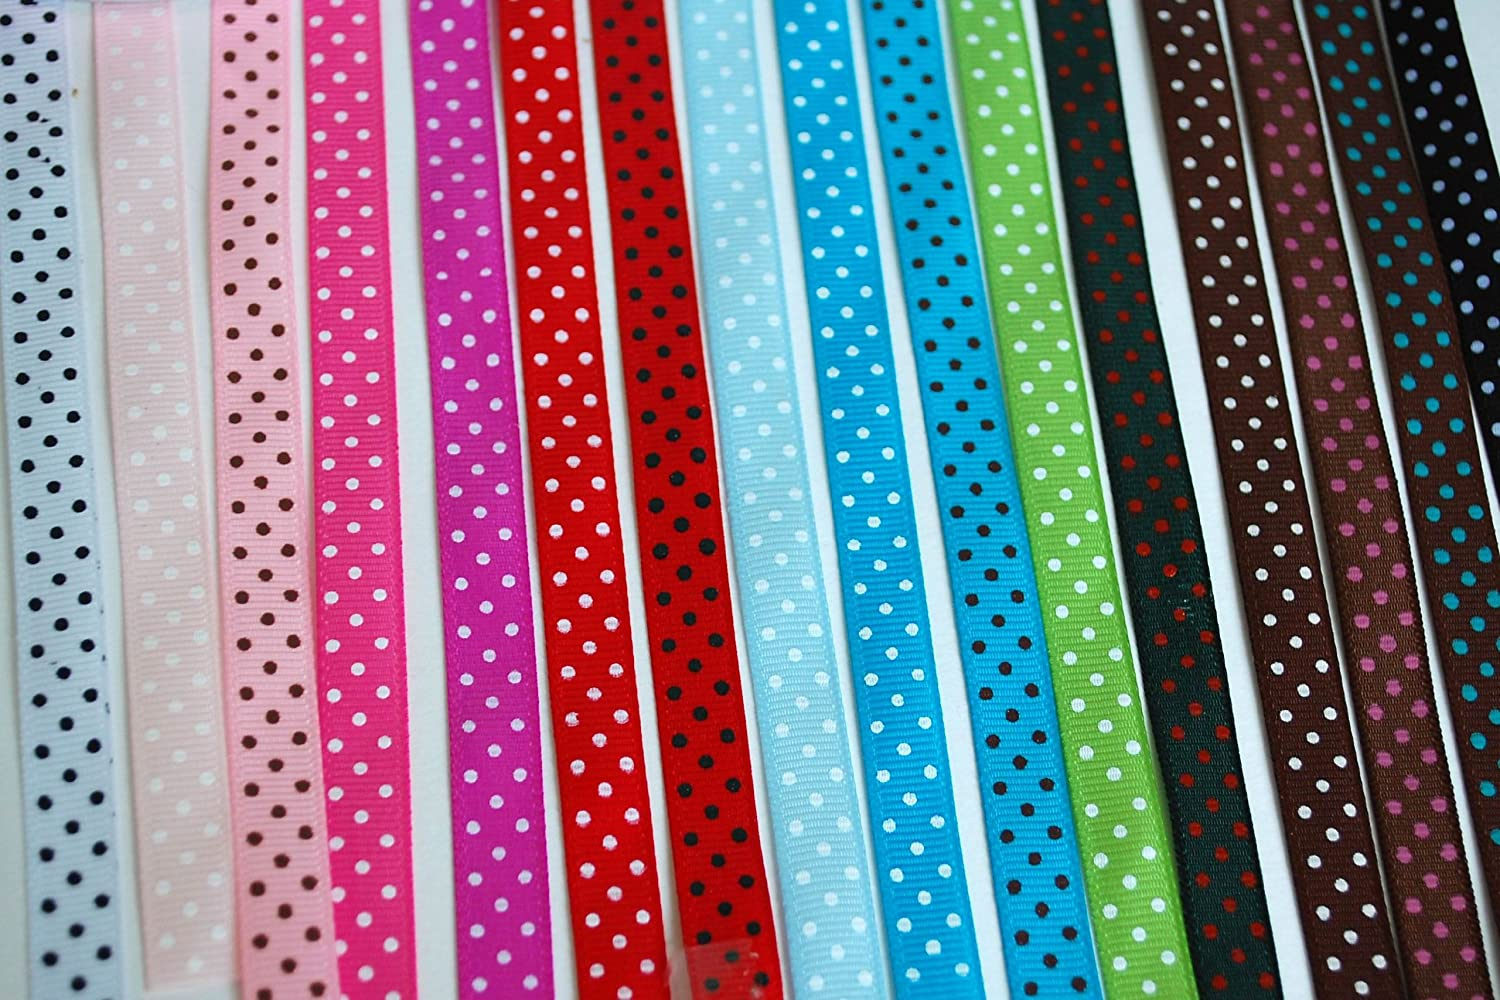 Polka Dot Grosgrain Ribbon-16 Colors of 3/8